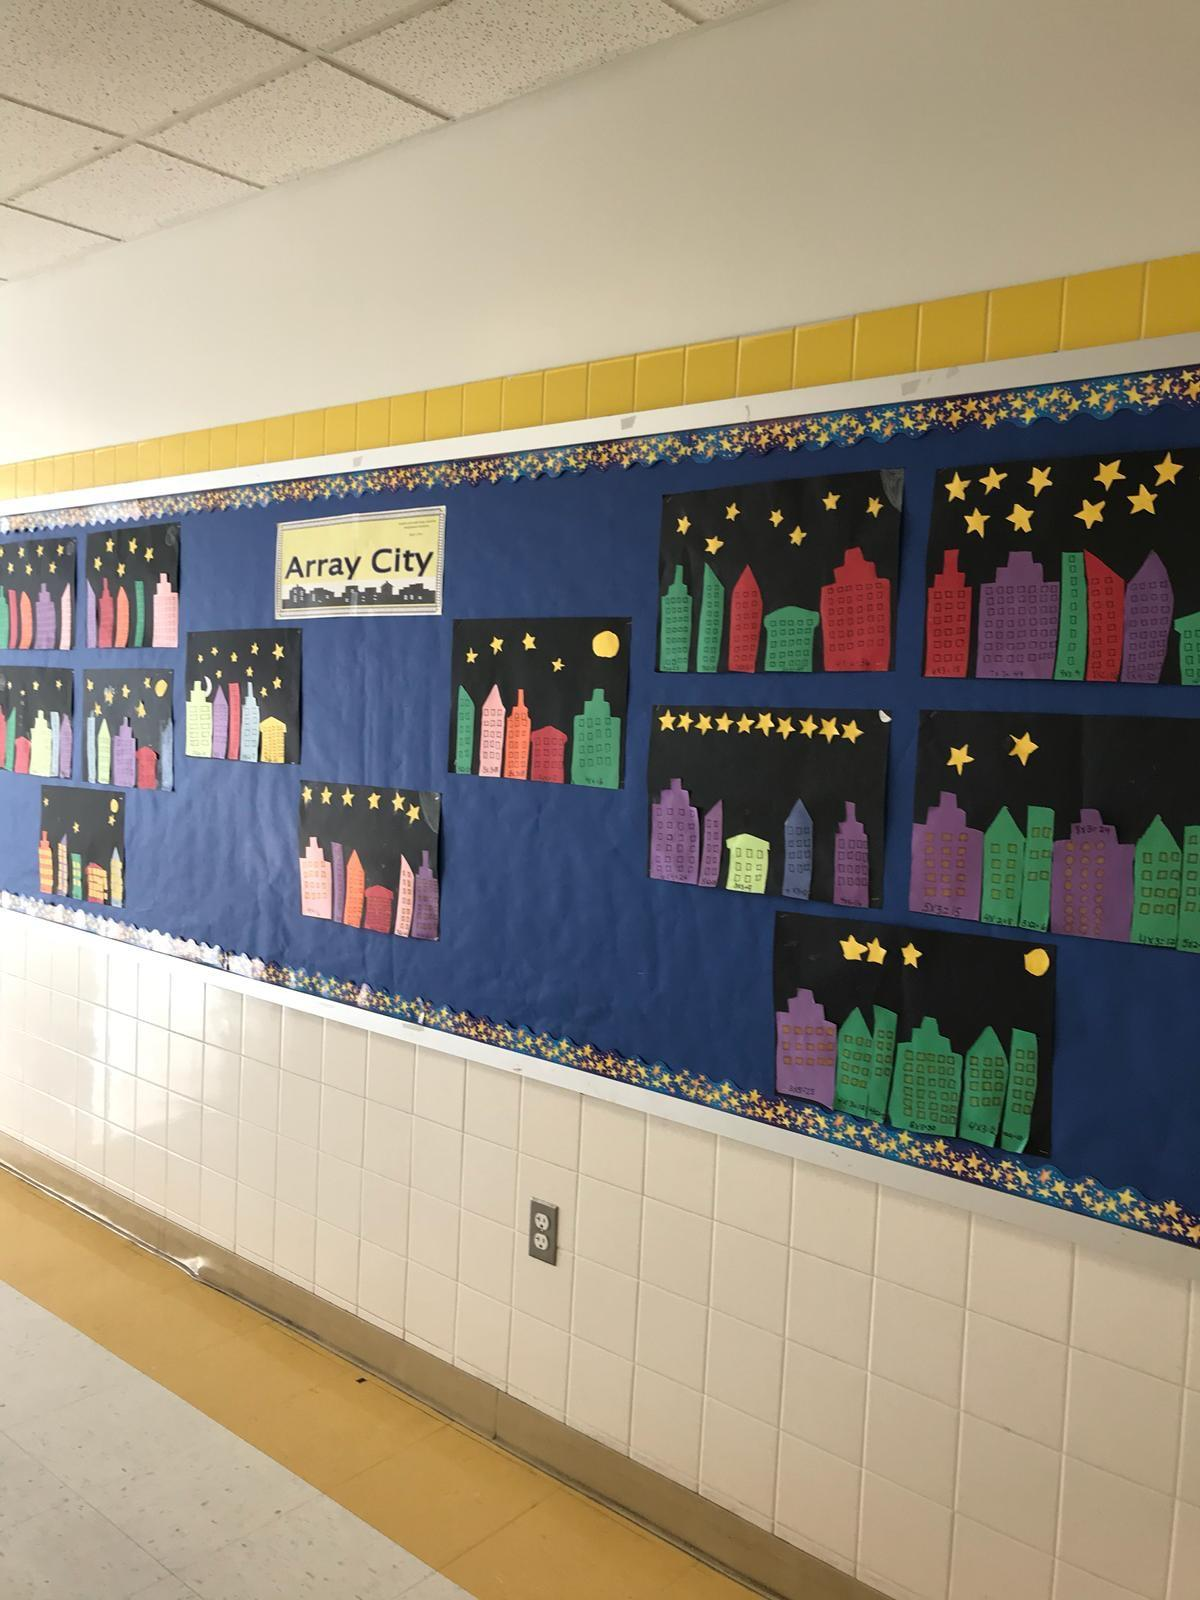 Array city bulletin board of building skyline